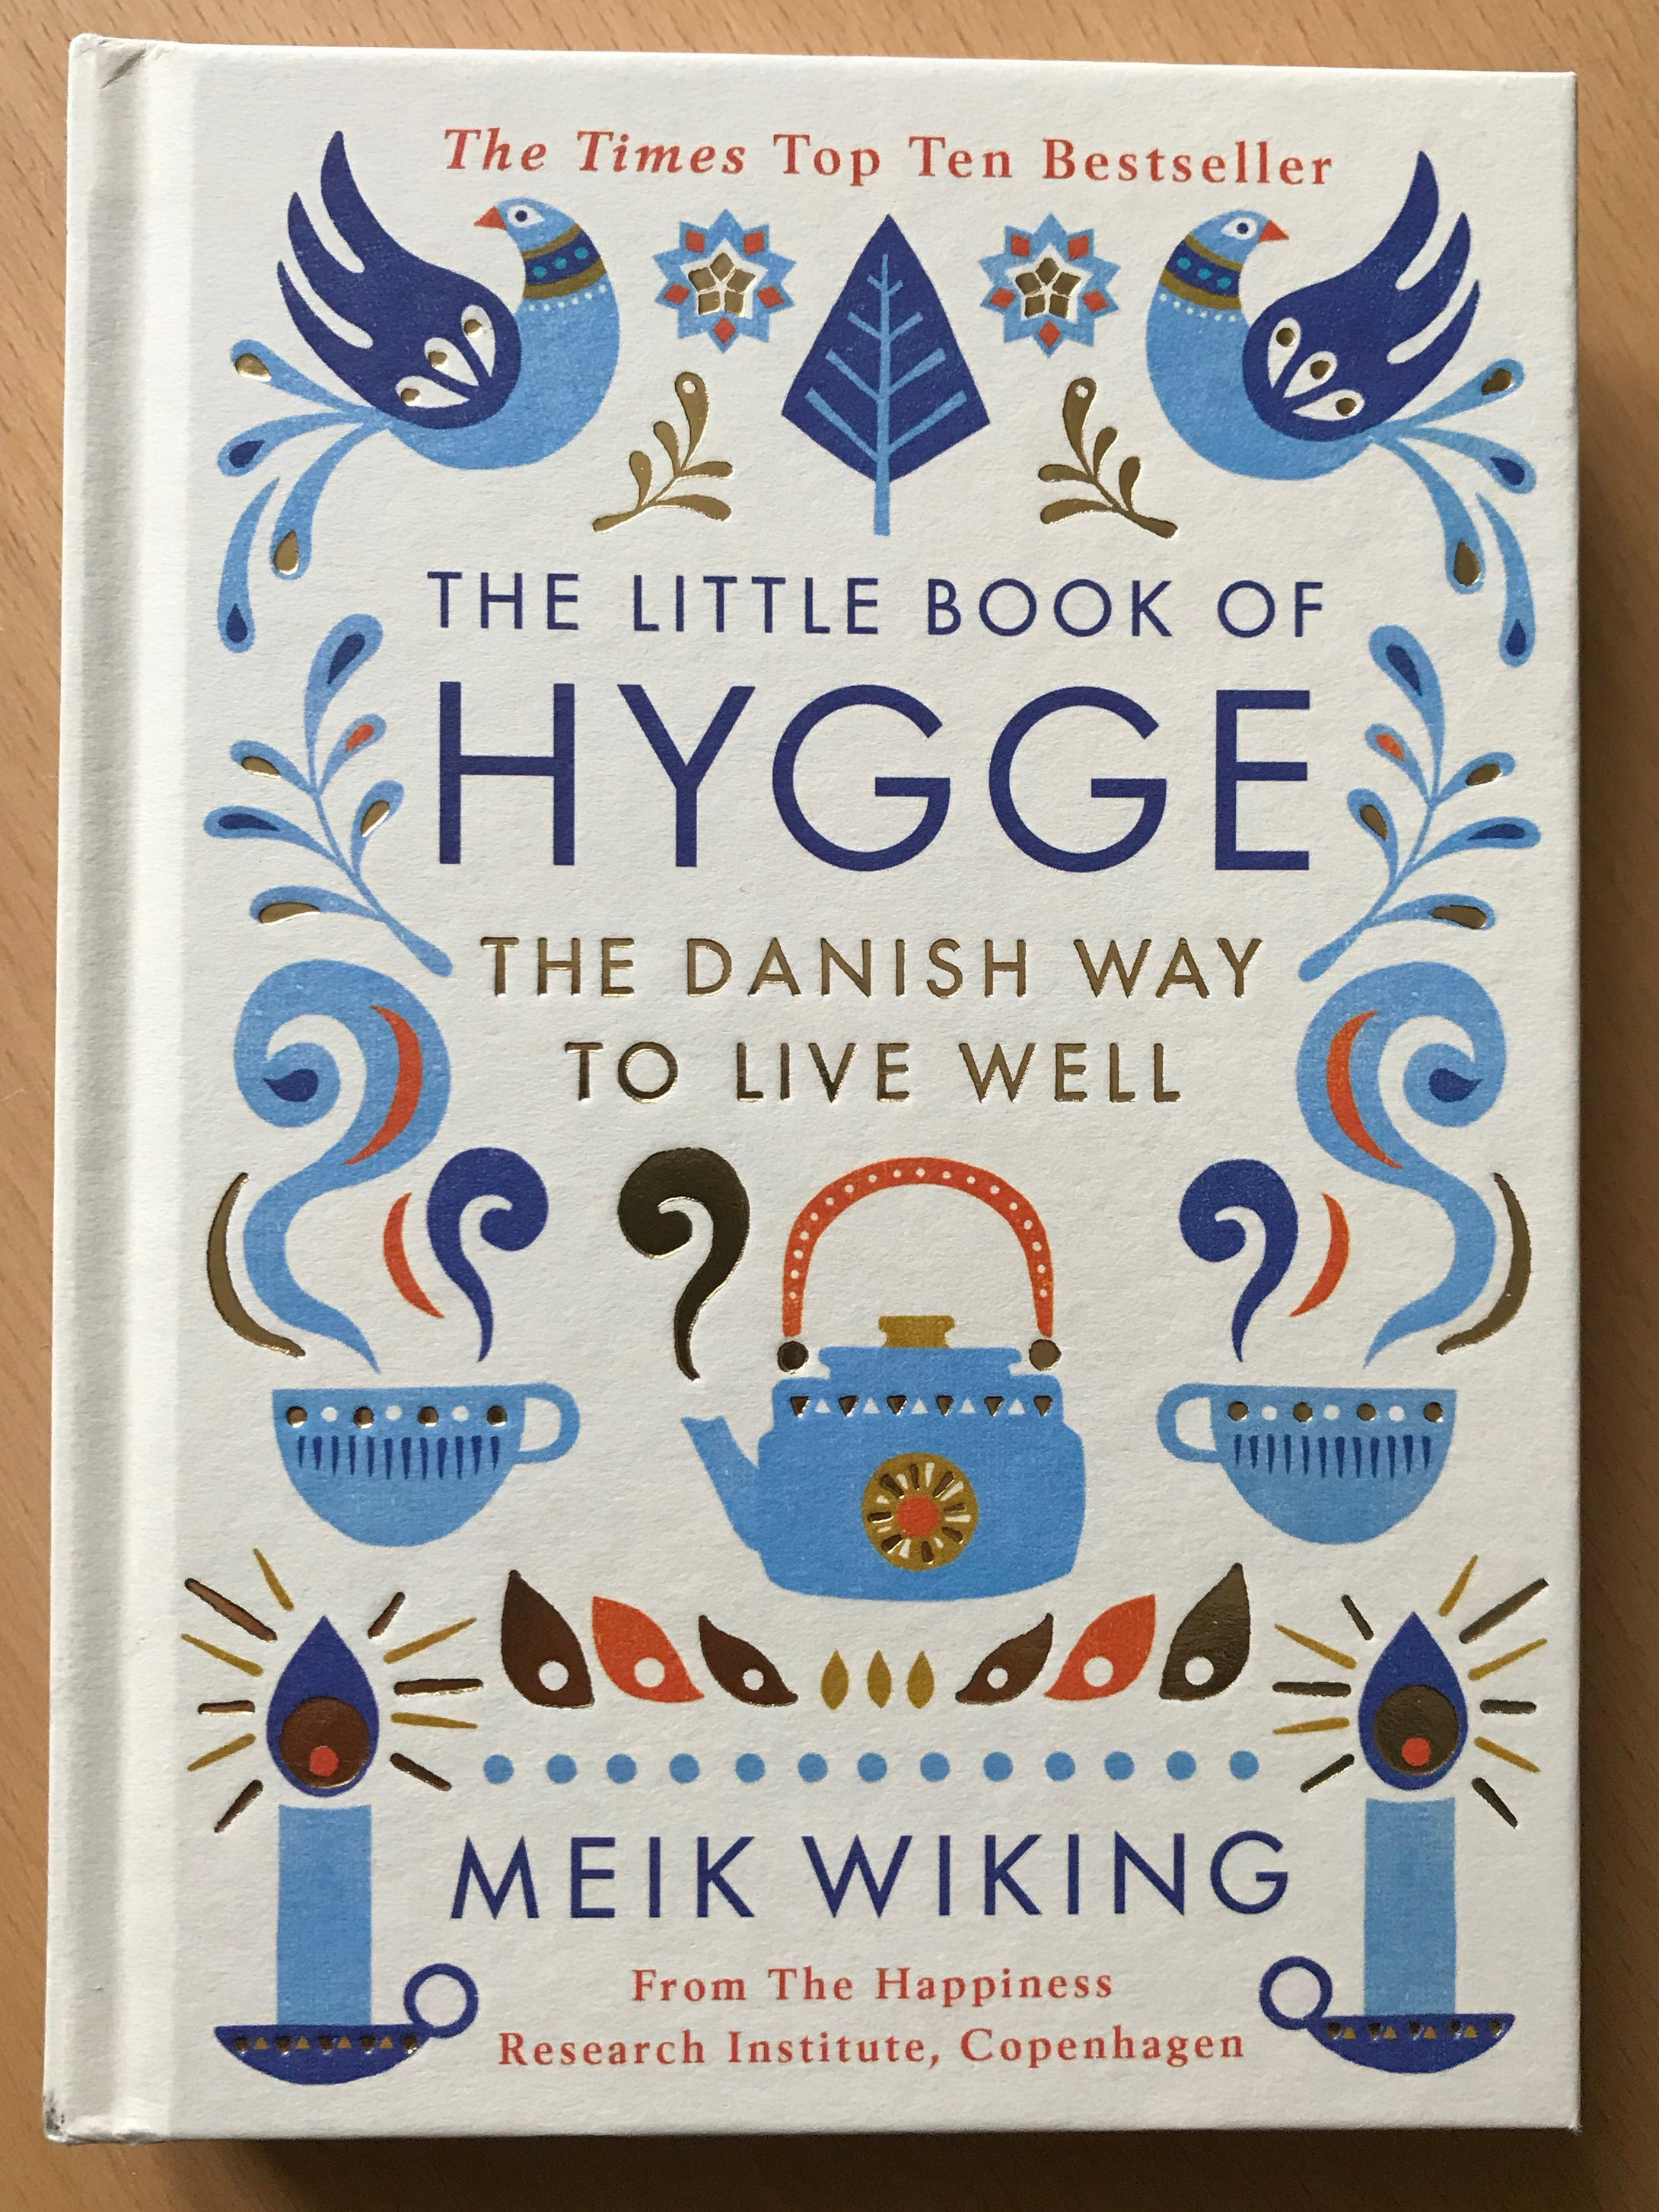 The Little Book of Hygge - FREE if you spend $ 300 or more.